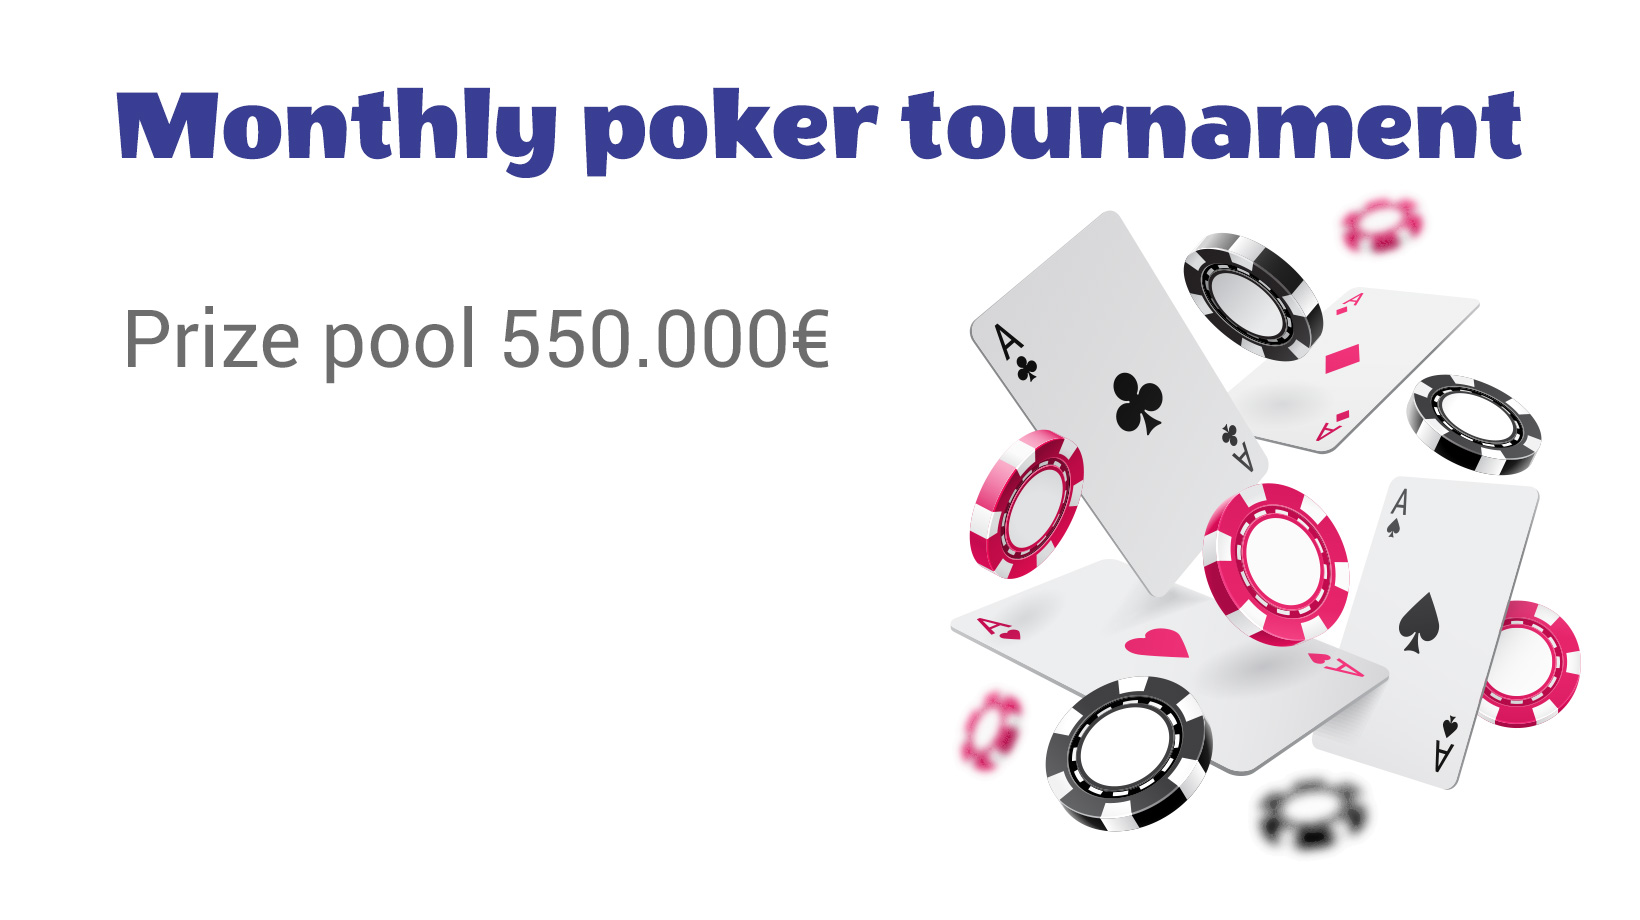 MONTHLY TOURNAMENTS WITH GUARANTEED PRIZE